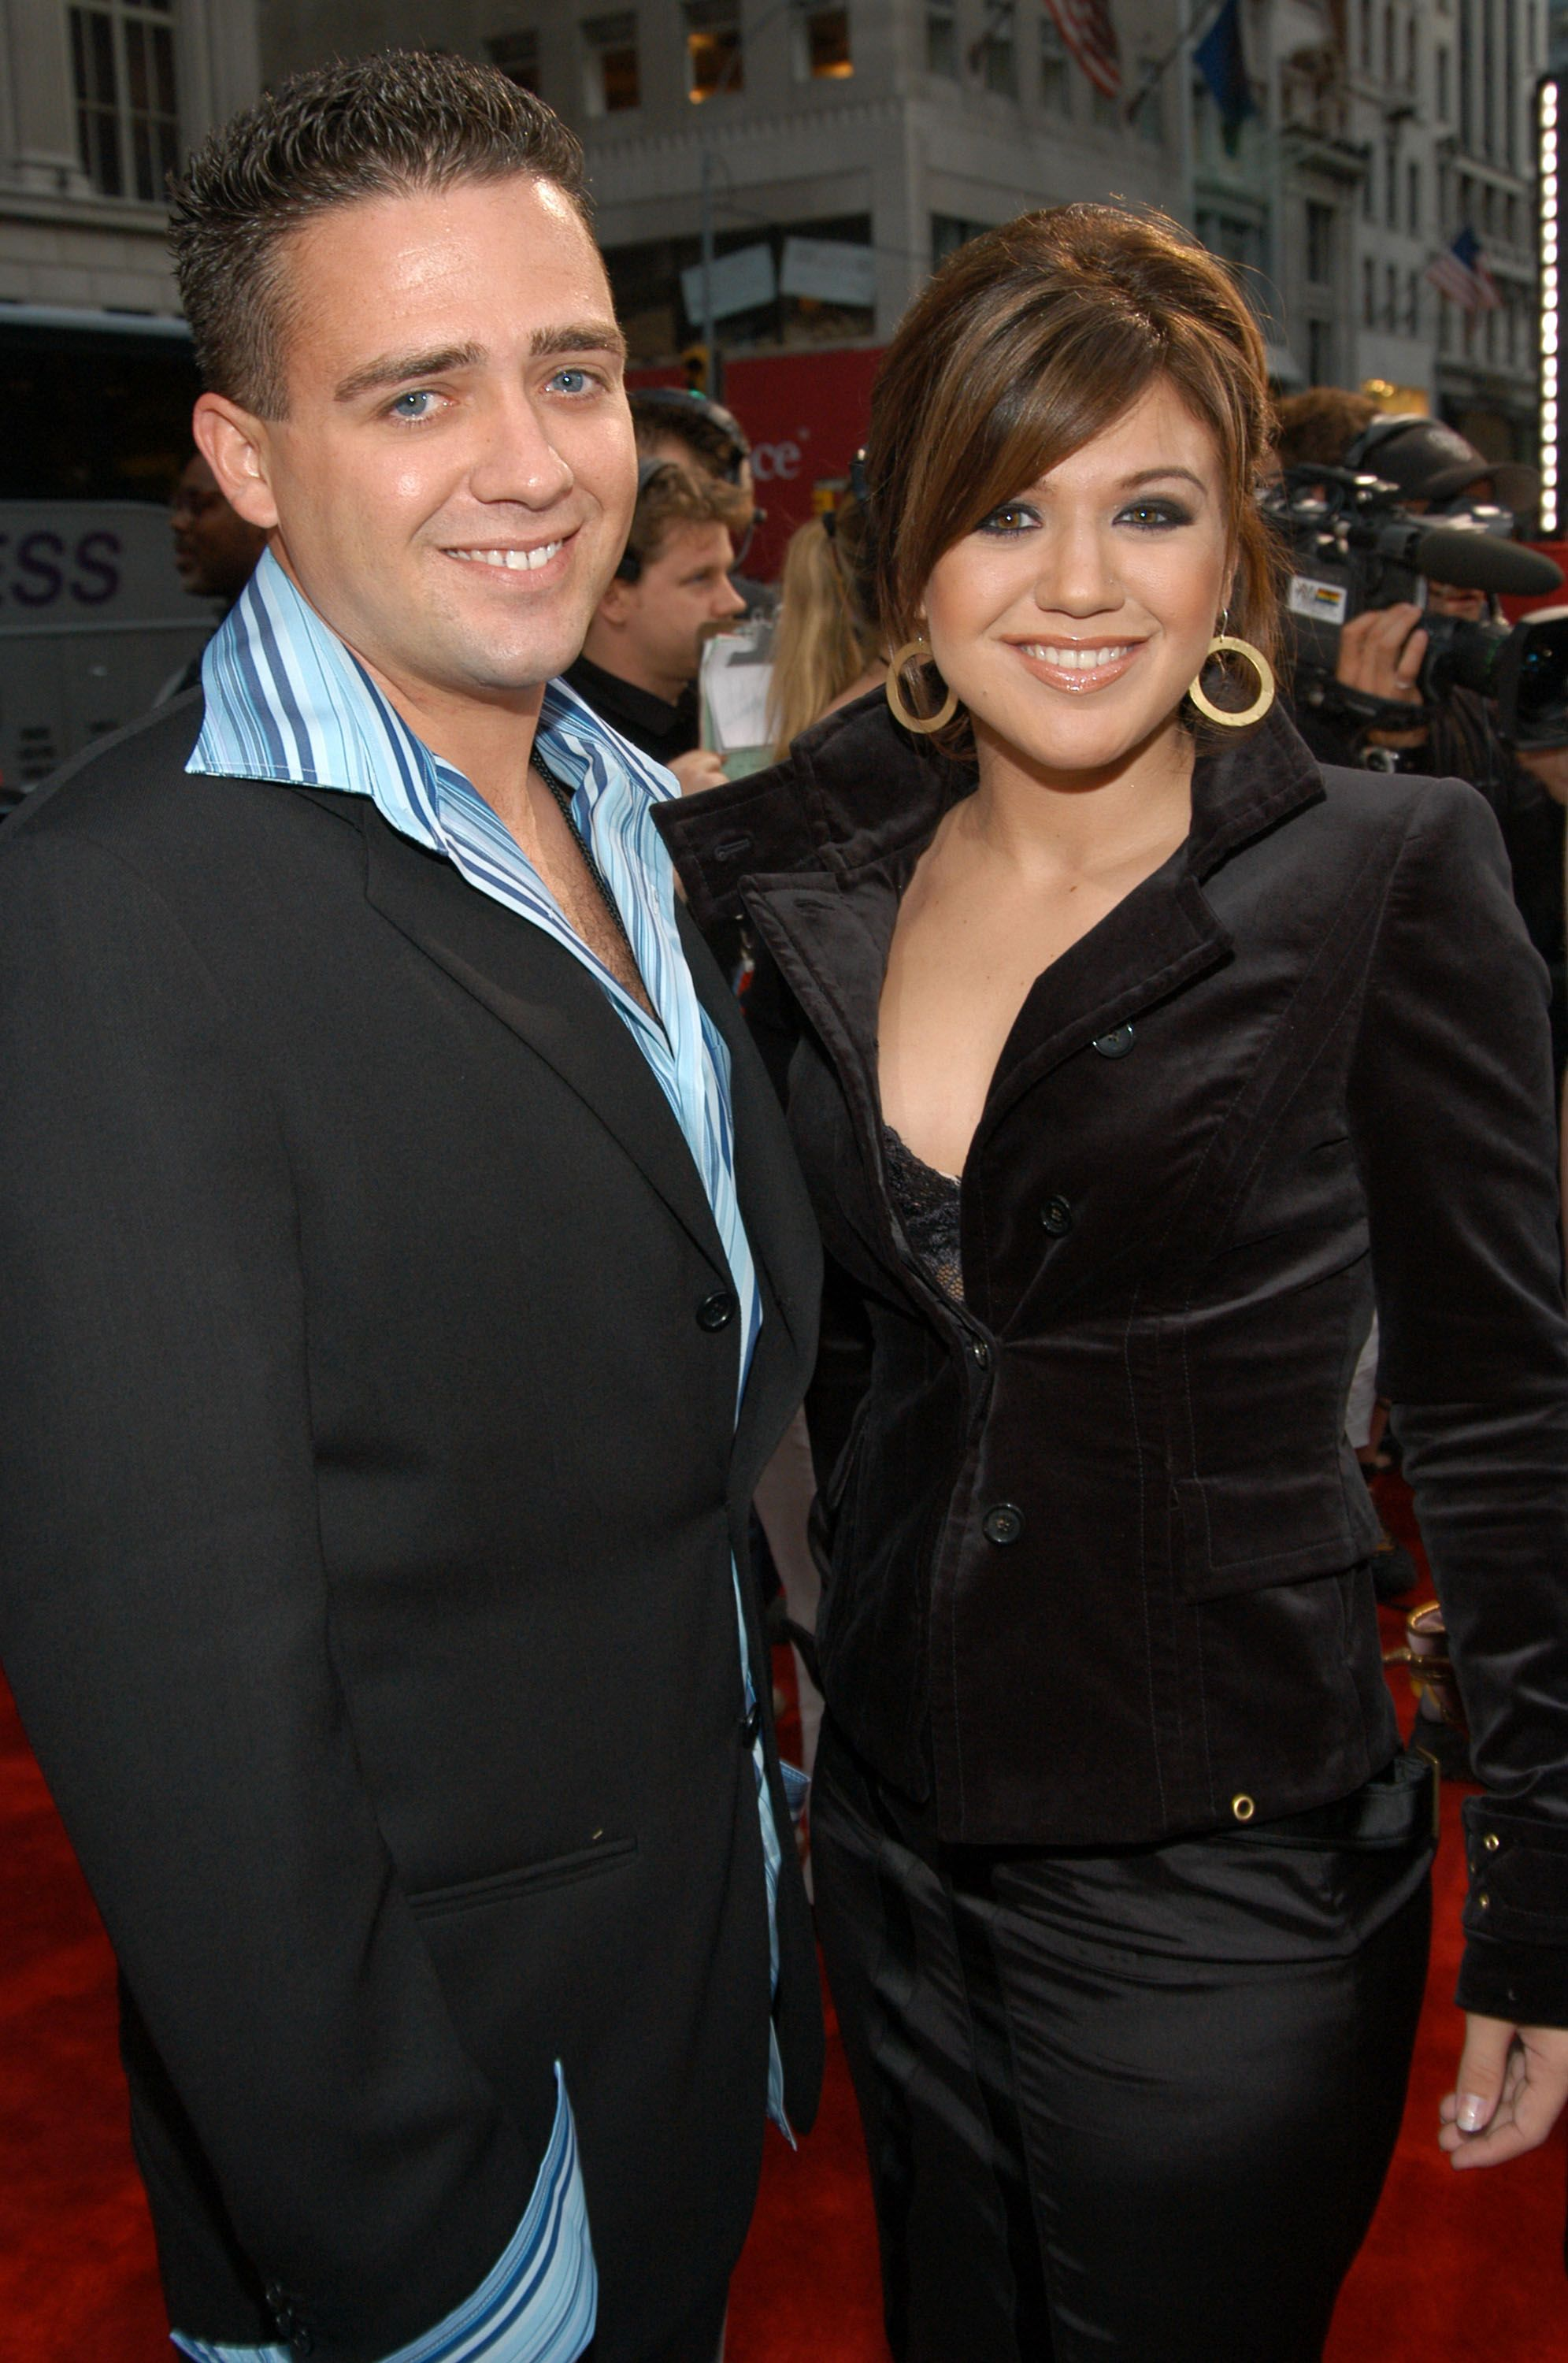 Jason Clarkson and Kelly Clarkson at the Radio City Music Hall in New York City,2003| Photo:Getty Images